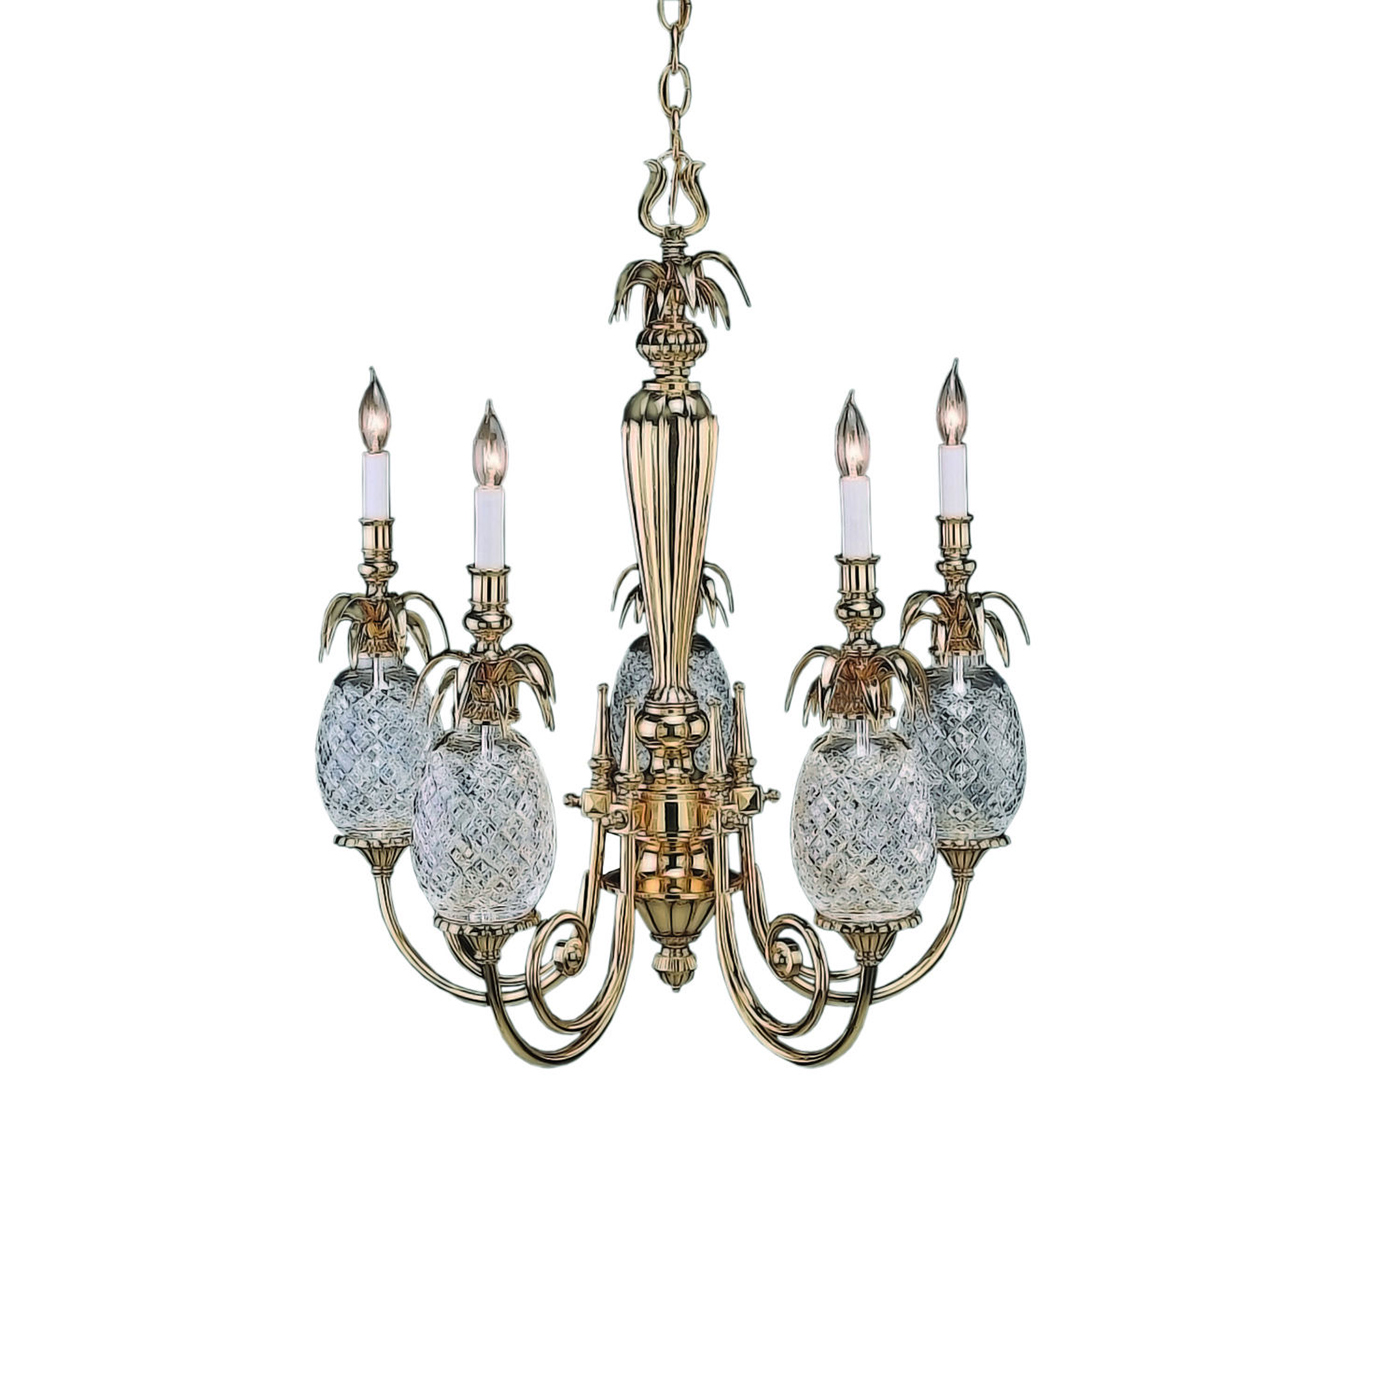 Pineapple hospitality 5 arm chandelier by waterford arubaitofo Image collections